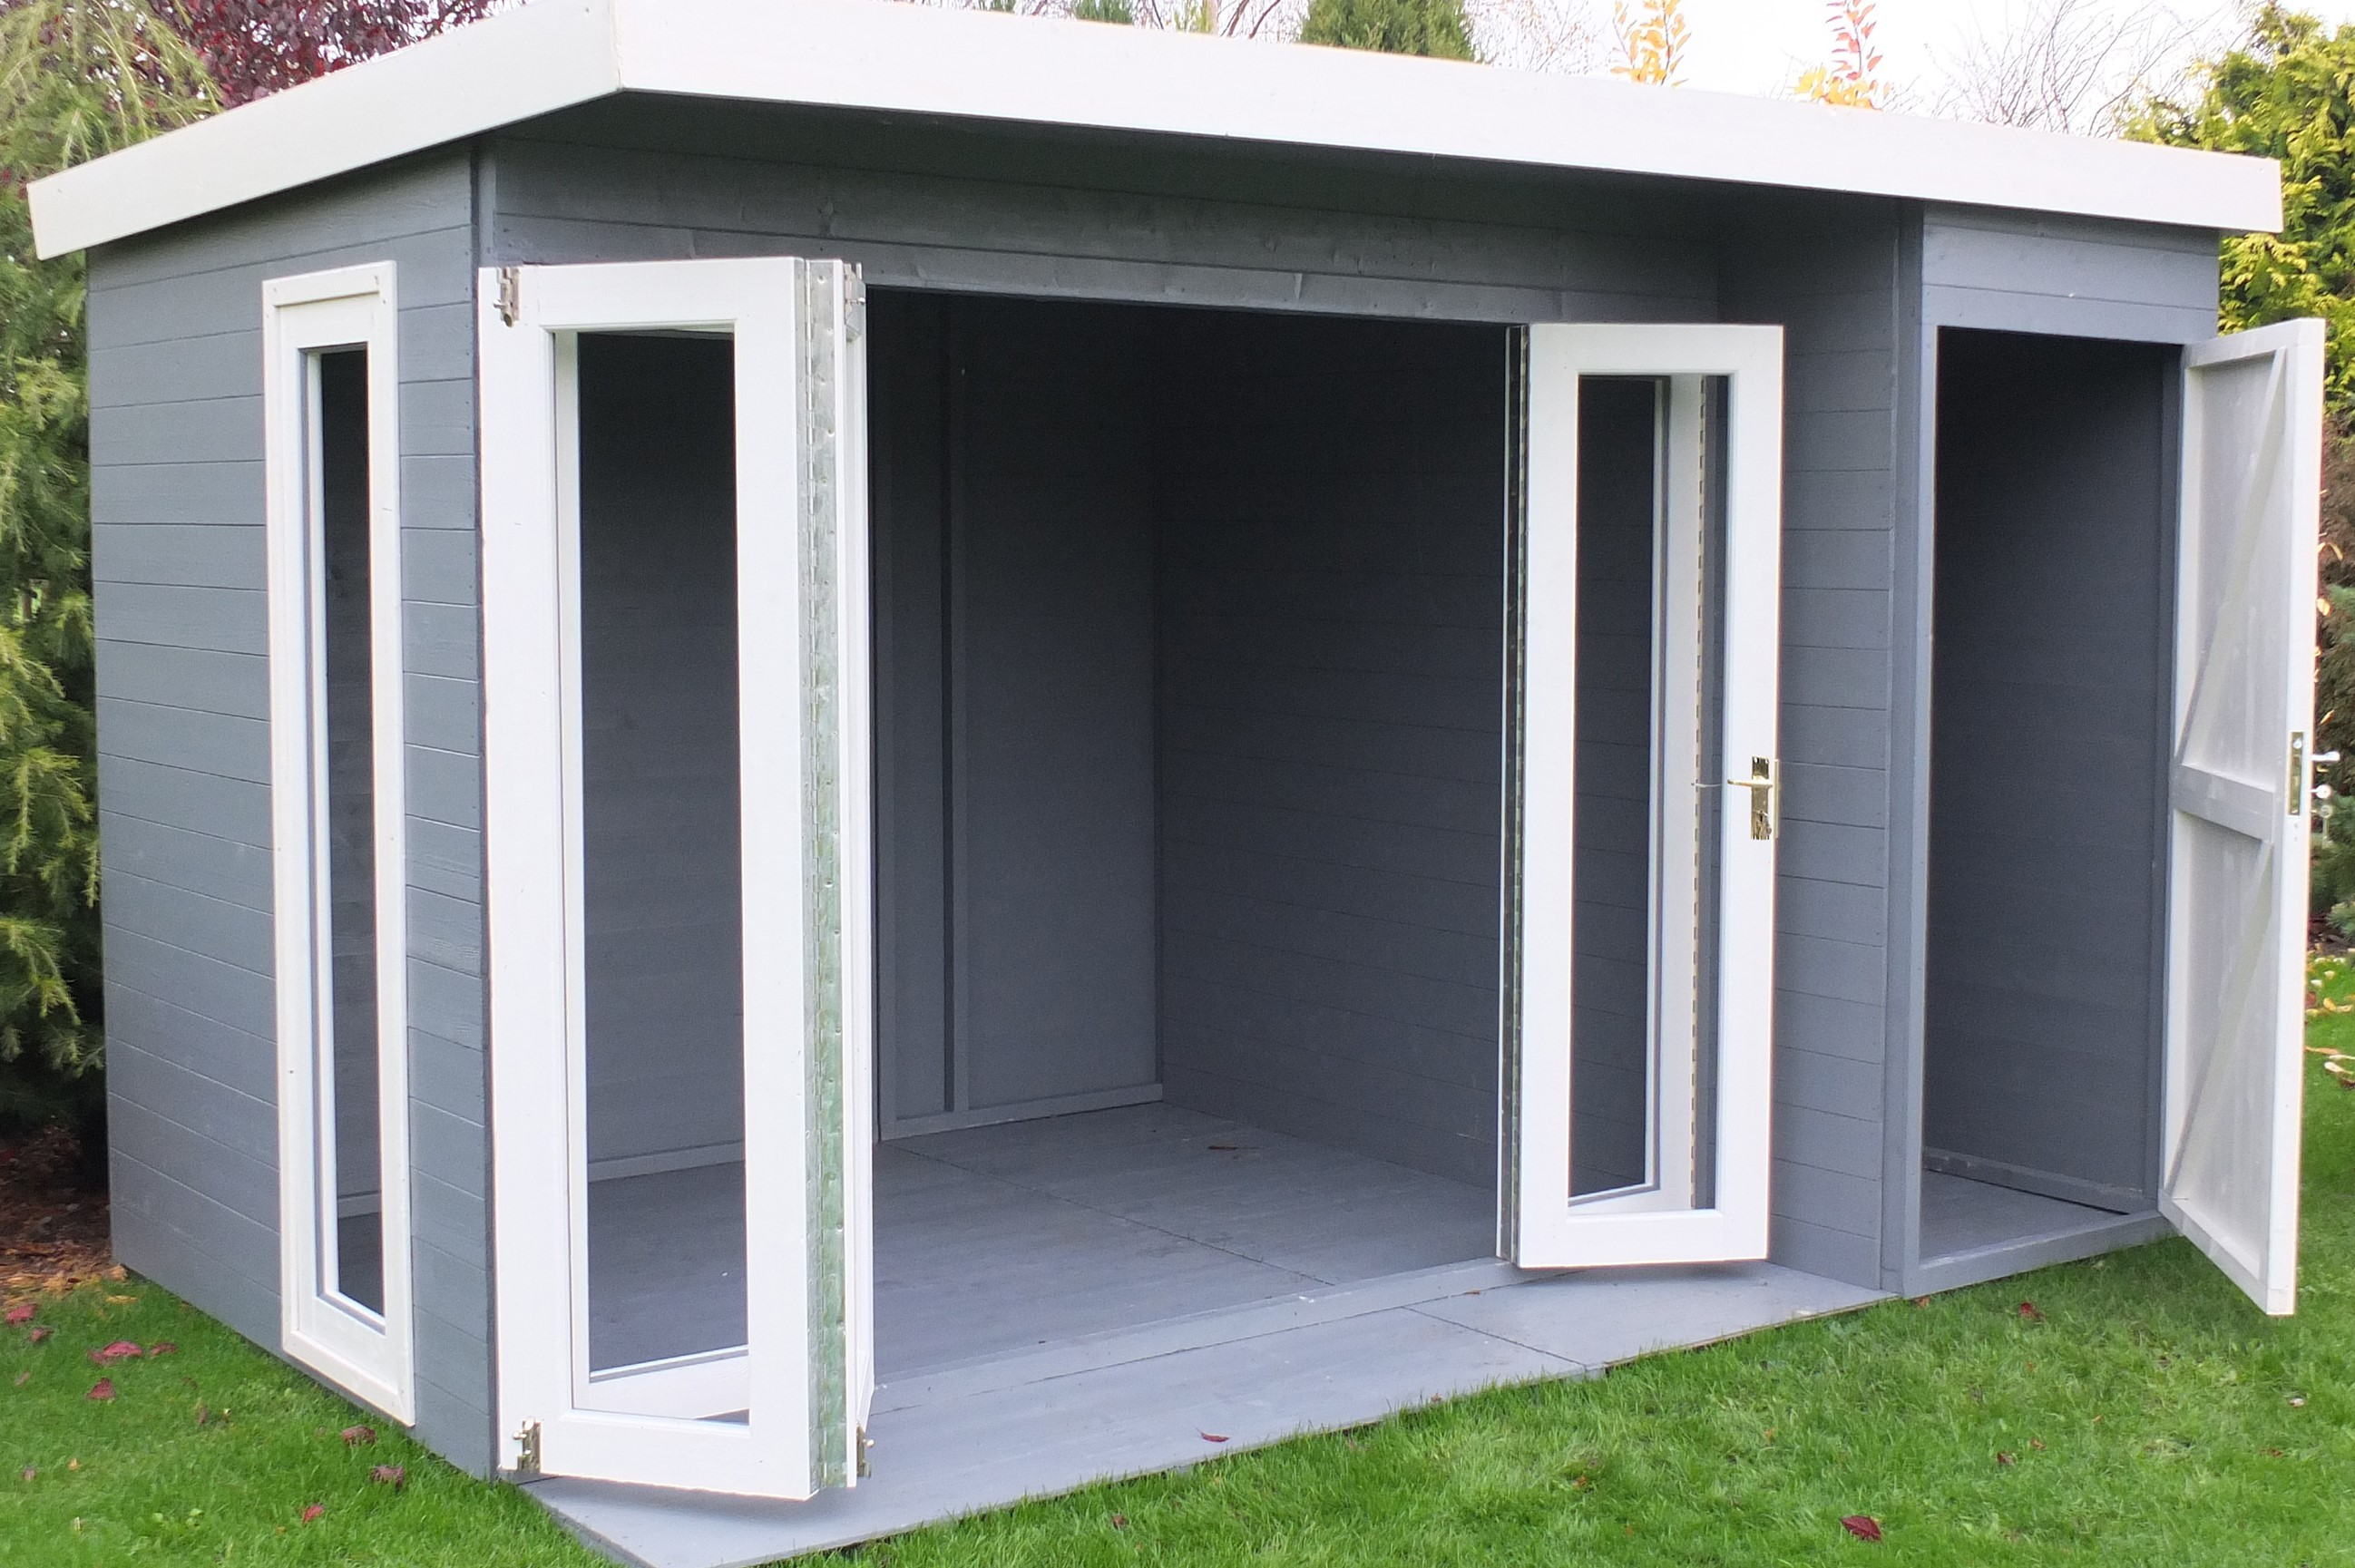 Shire Aster Summerhouse With Side Store 3 6x2 4m Map